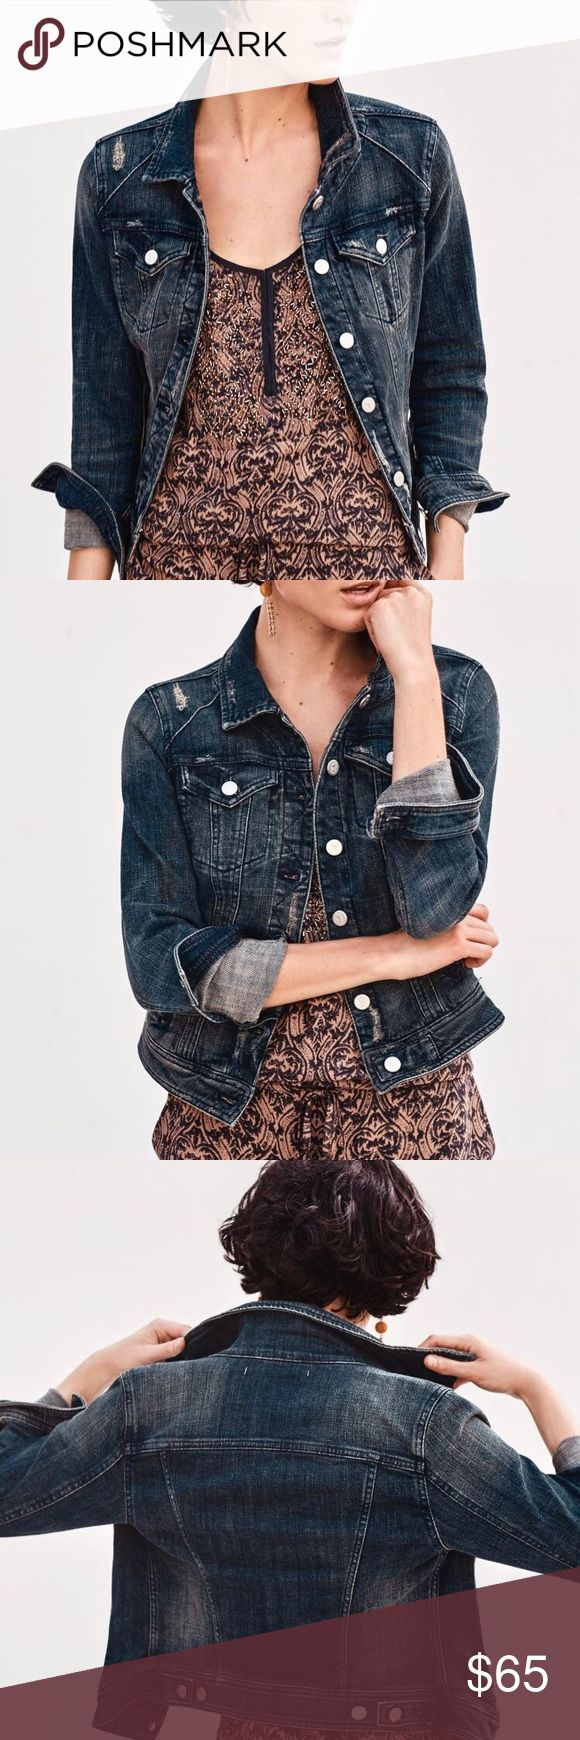 Anthropologie Pilcro Demin Jacket sz XL dark wash. Pilcro dark wash denim jacket with light distressing in sz XL. This jacket has that nice amount of stretch that Pilcro is known for. It is in excellent used condition. It's been super versatile and I love it. Bought the exact jacket in a smaller size and so I'm selling this one.   Smoke free, perfume free and pet free home. Anthropologie Jackets & Coats Jean Jackets